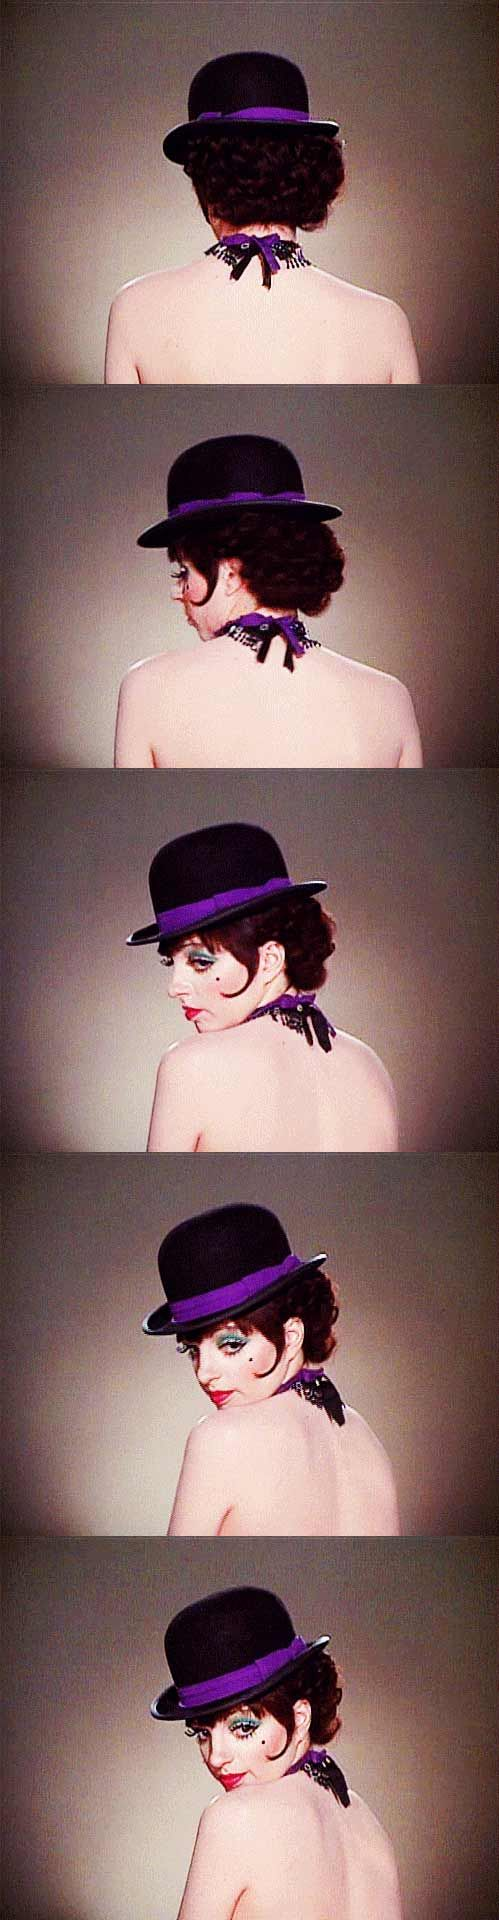 Liza Minnelli as 'Sally Bowles' in Cabaret (1972)